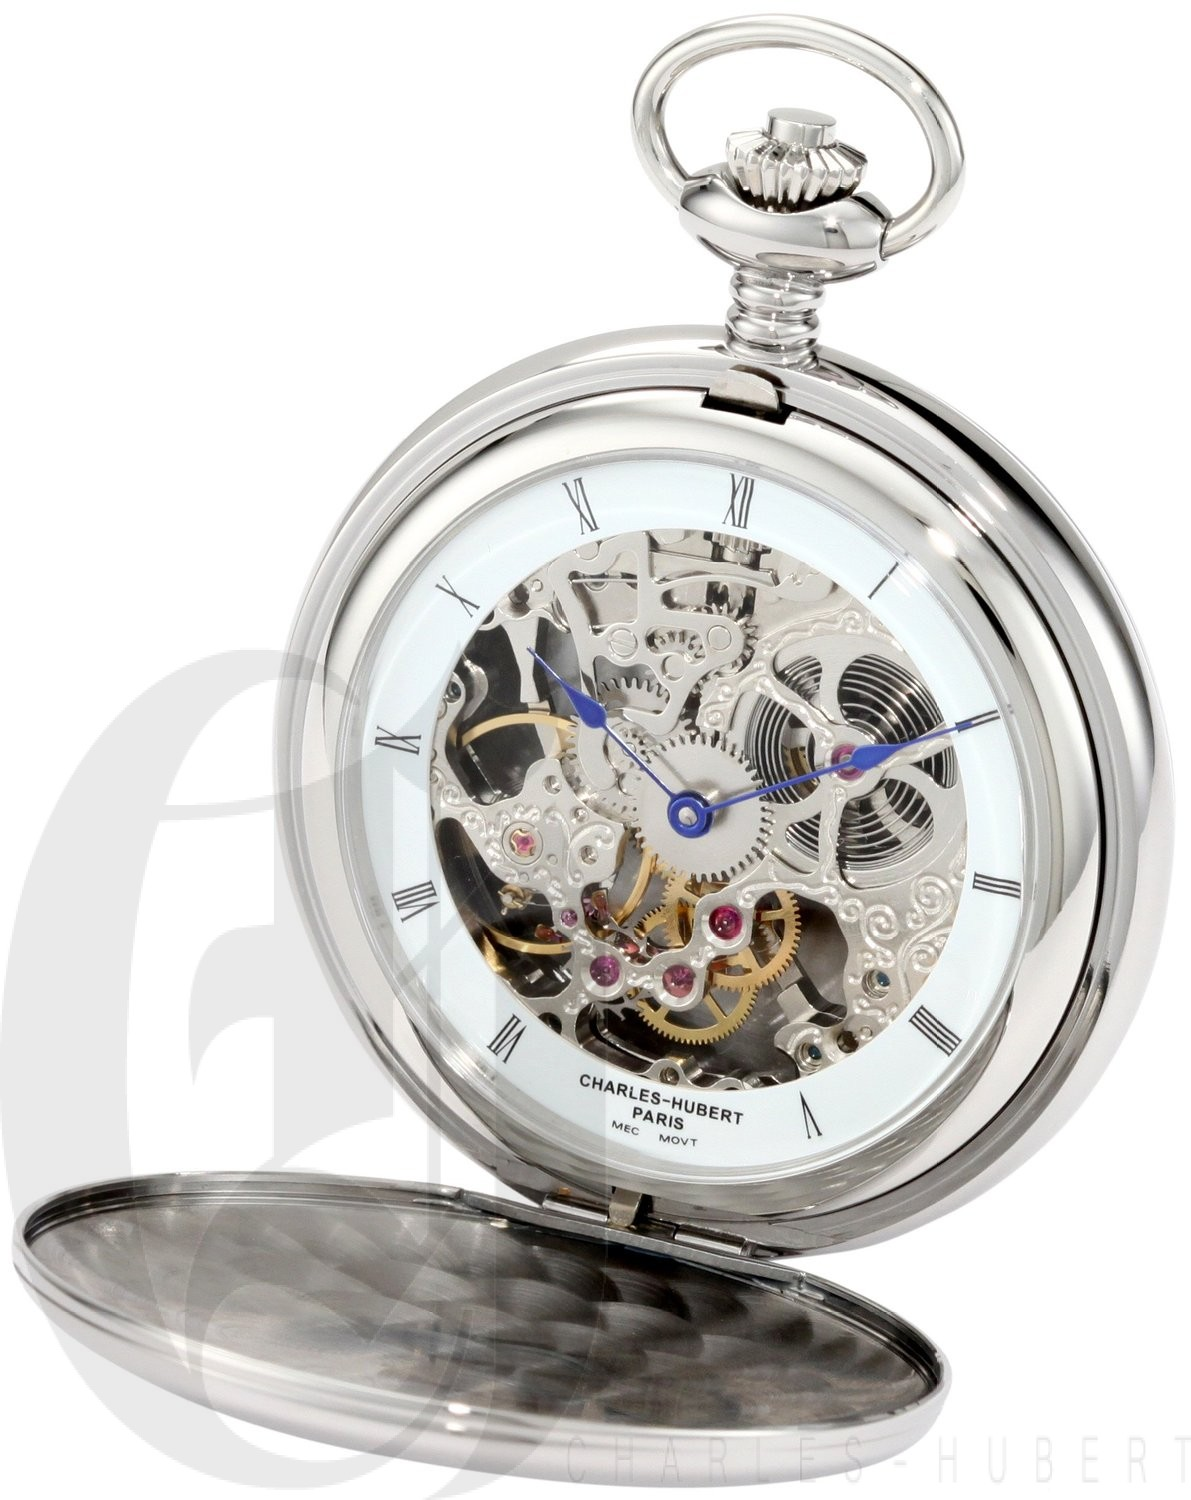 Charles-Hubert Paris Stainless Steel Polished Finish Double Hunter Case Mechanical Pocket Watch